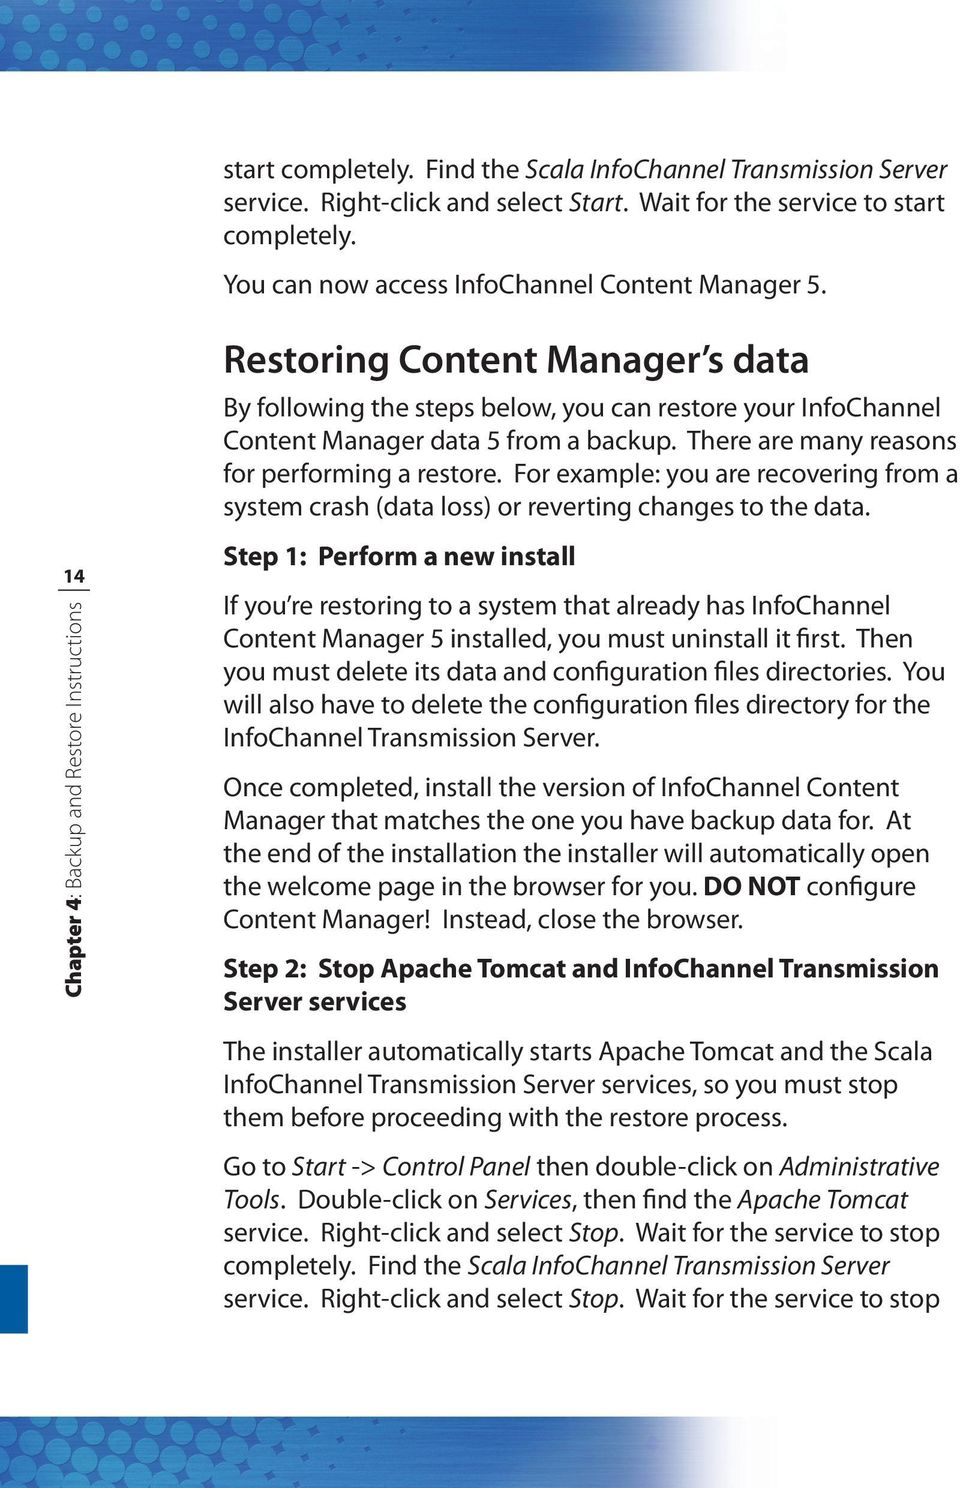 For example: you are recovering from a system crash (data loss) or reverting changes to the data.